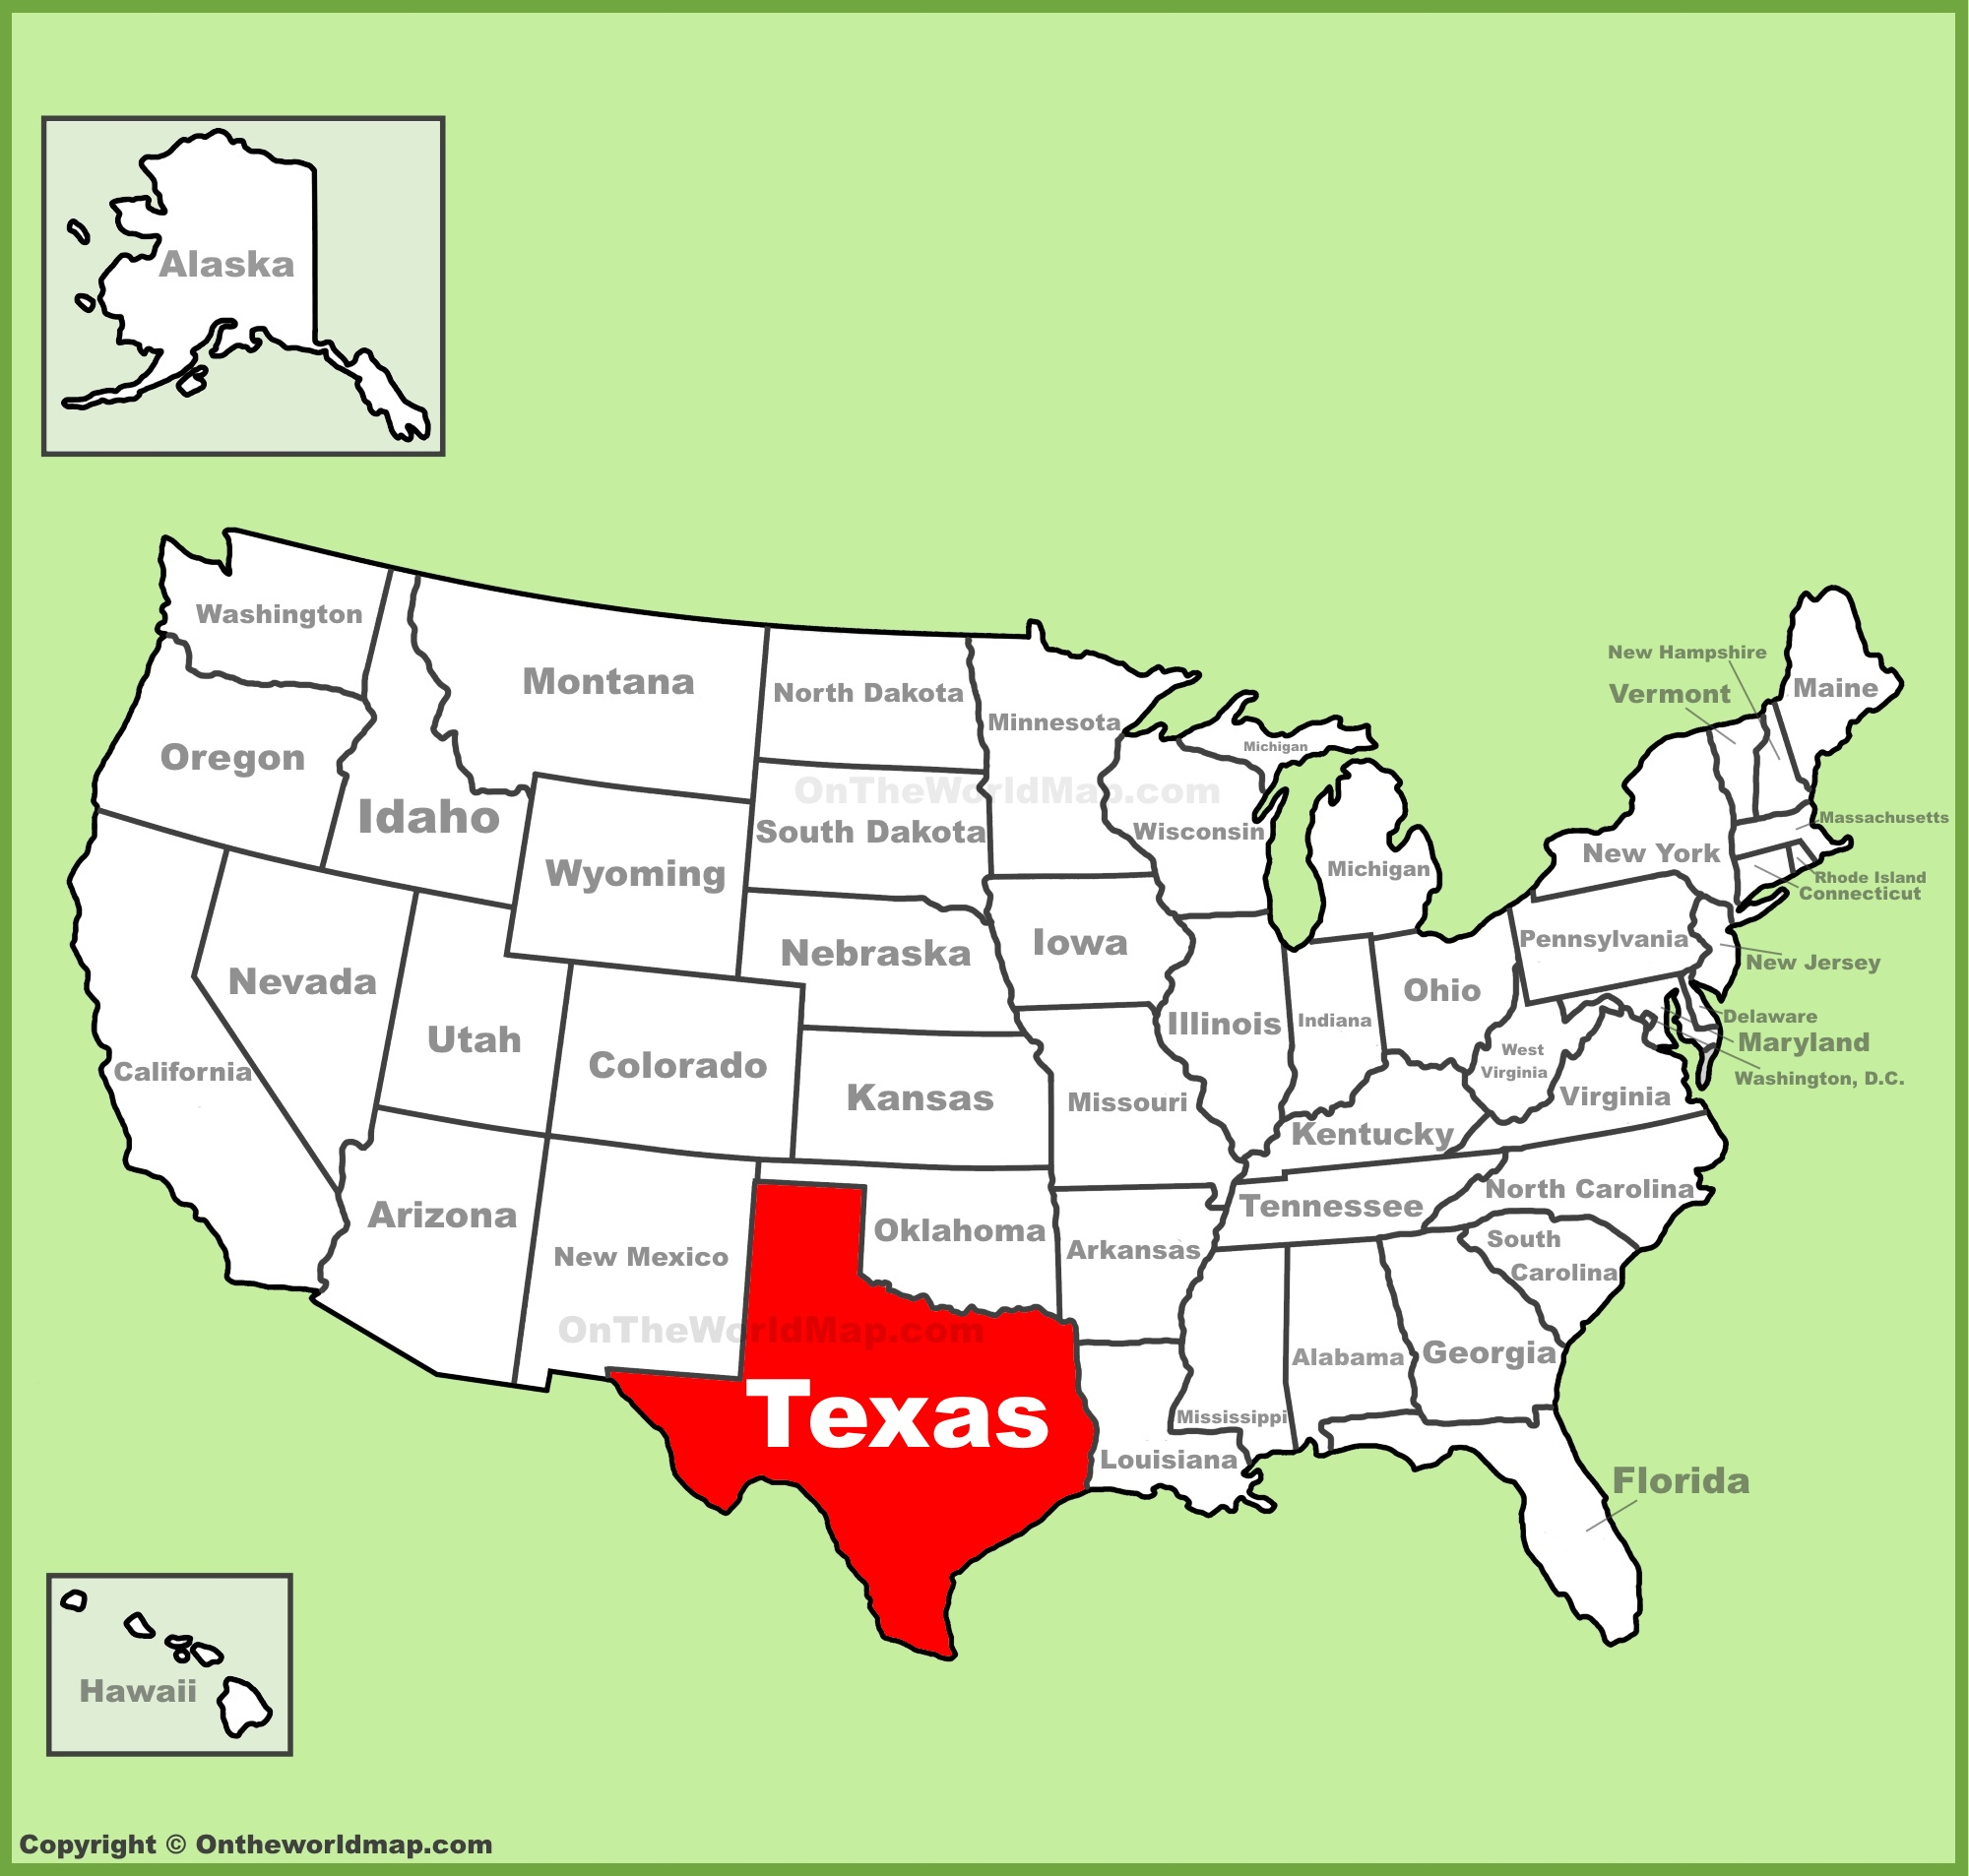 Texas State Maps USA Maps Of Texas TX - Usa texas map